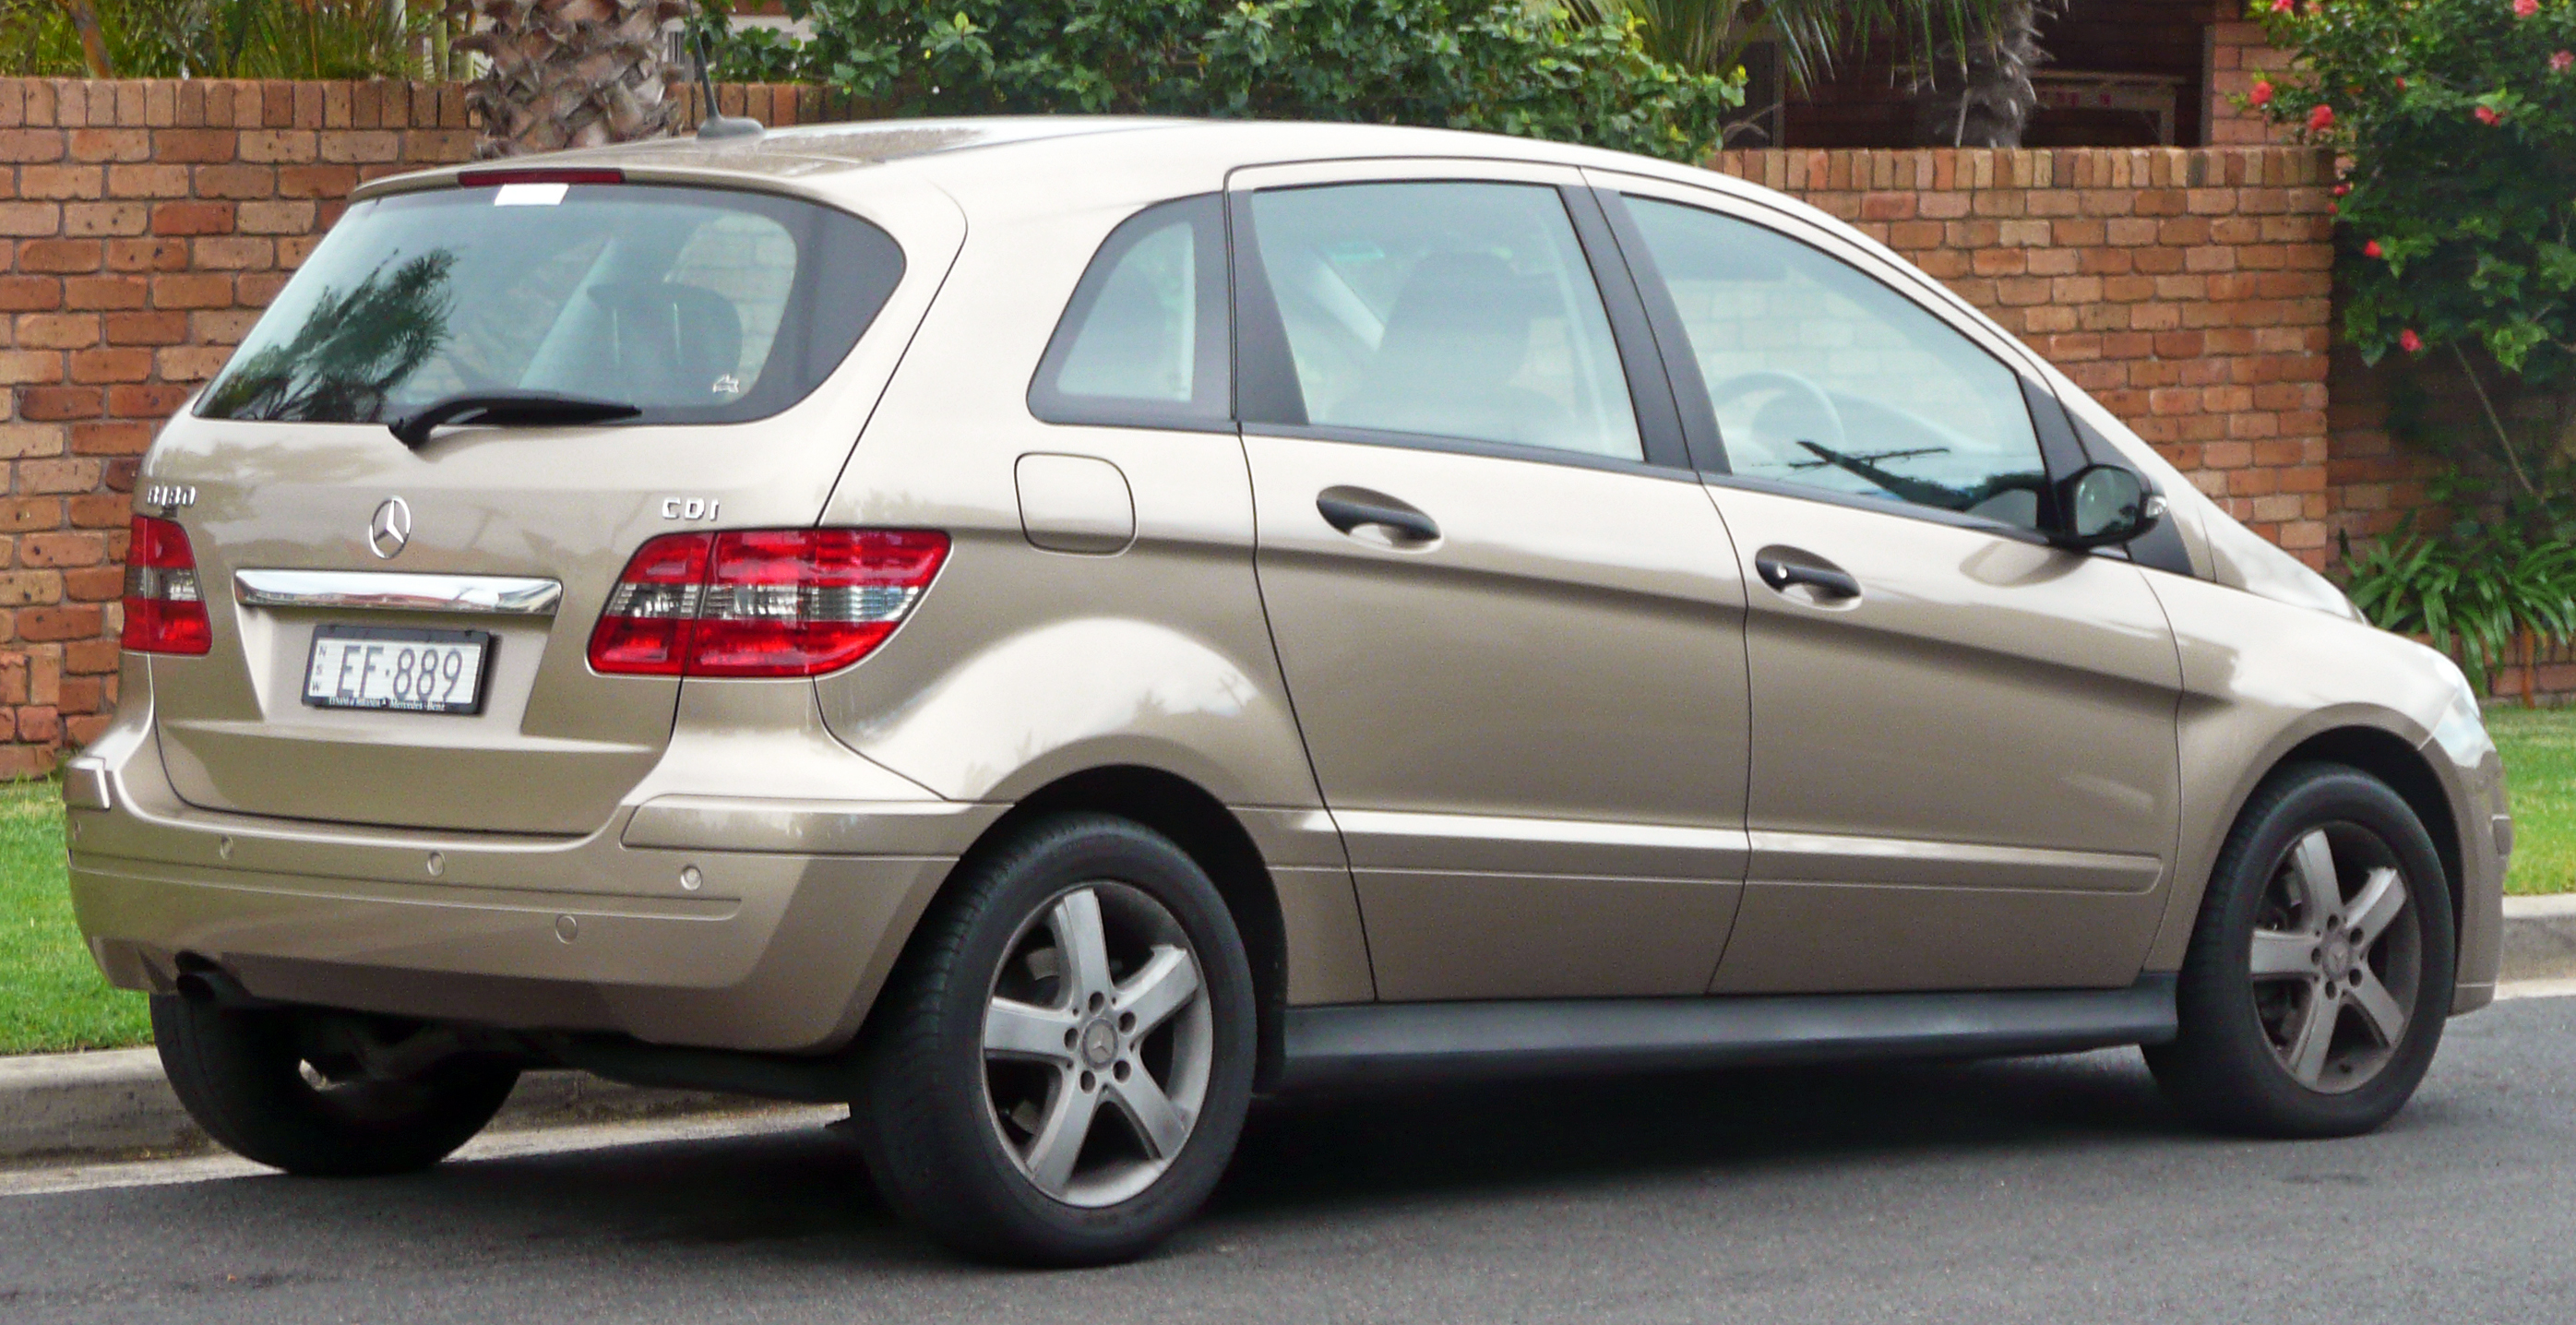 Mercedes benz b180 cdi photos reviews news specs buy car for Mercedes benz b class 180